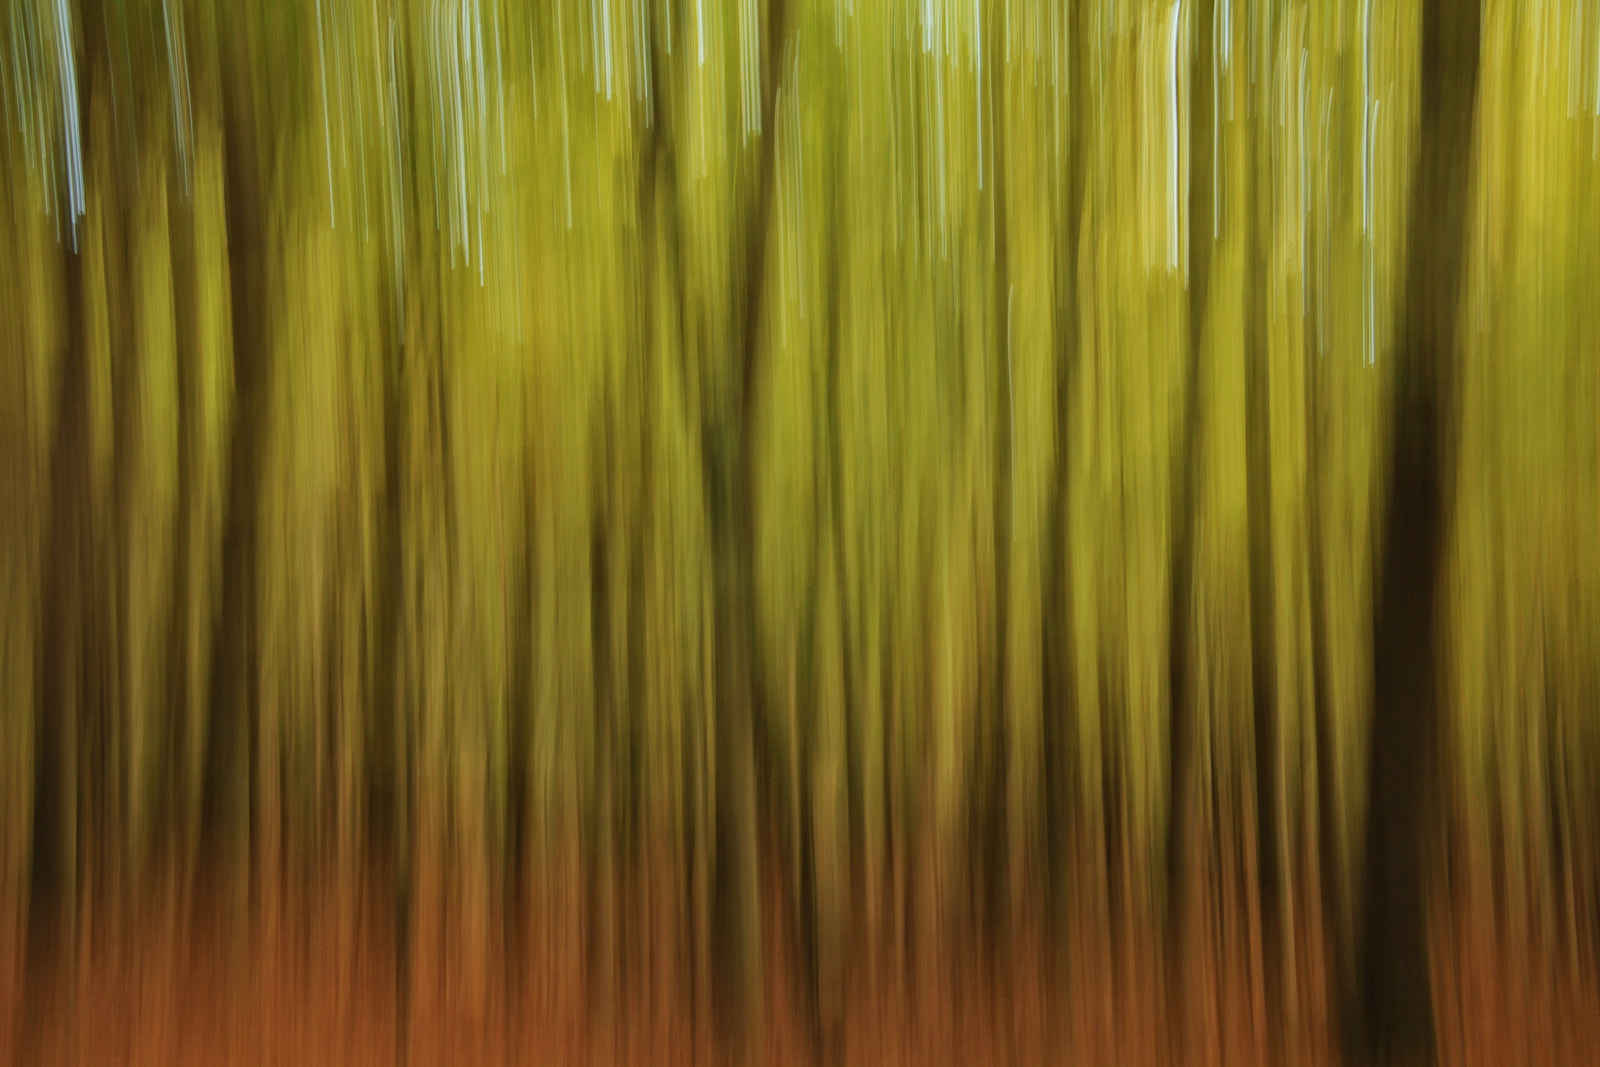 Photograph Autumn trees by Joost Lagerweij on 500px